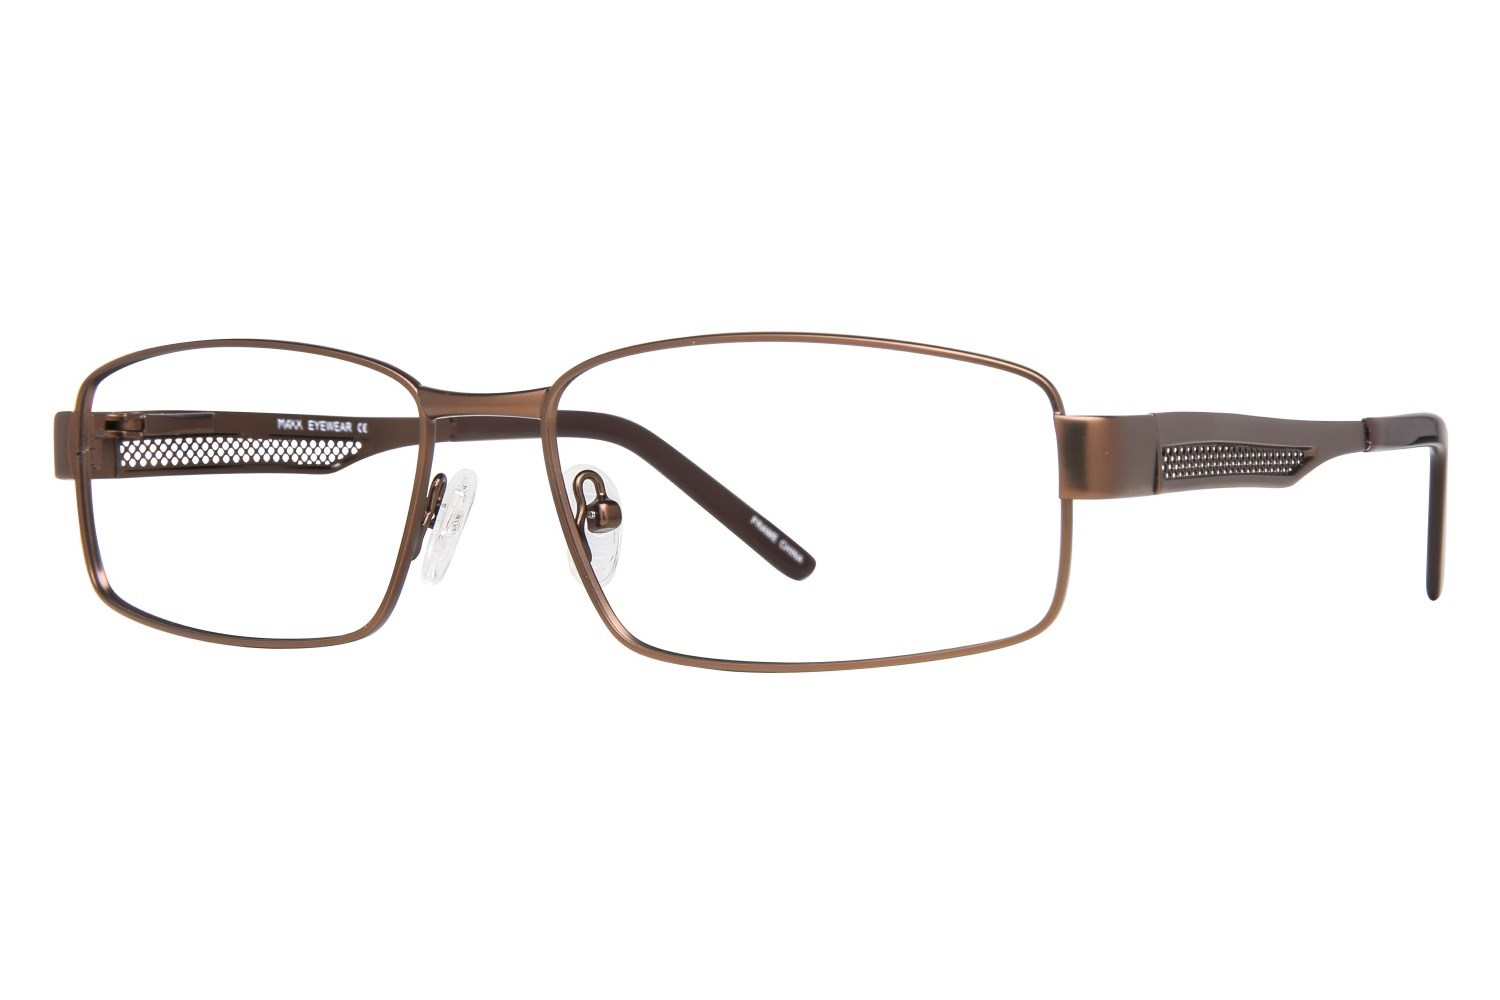 Eyeglass Frame Lookup : Best Eyewear Frames - Search